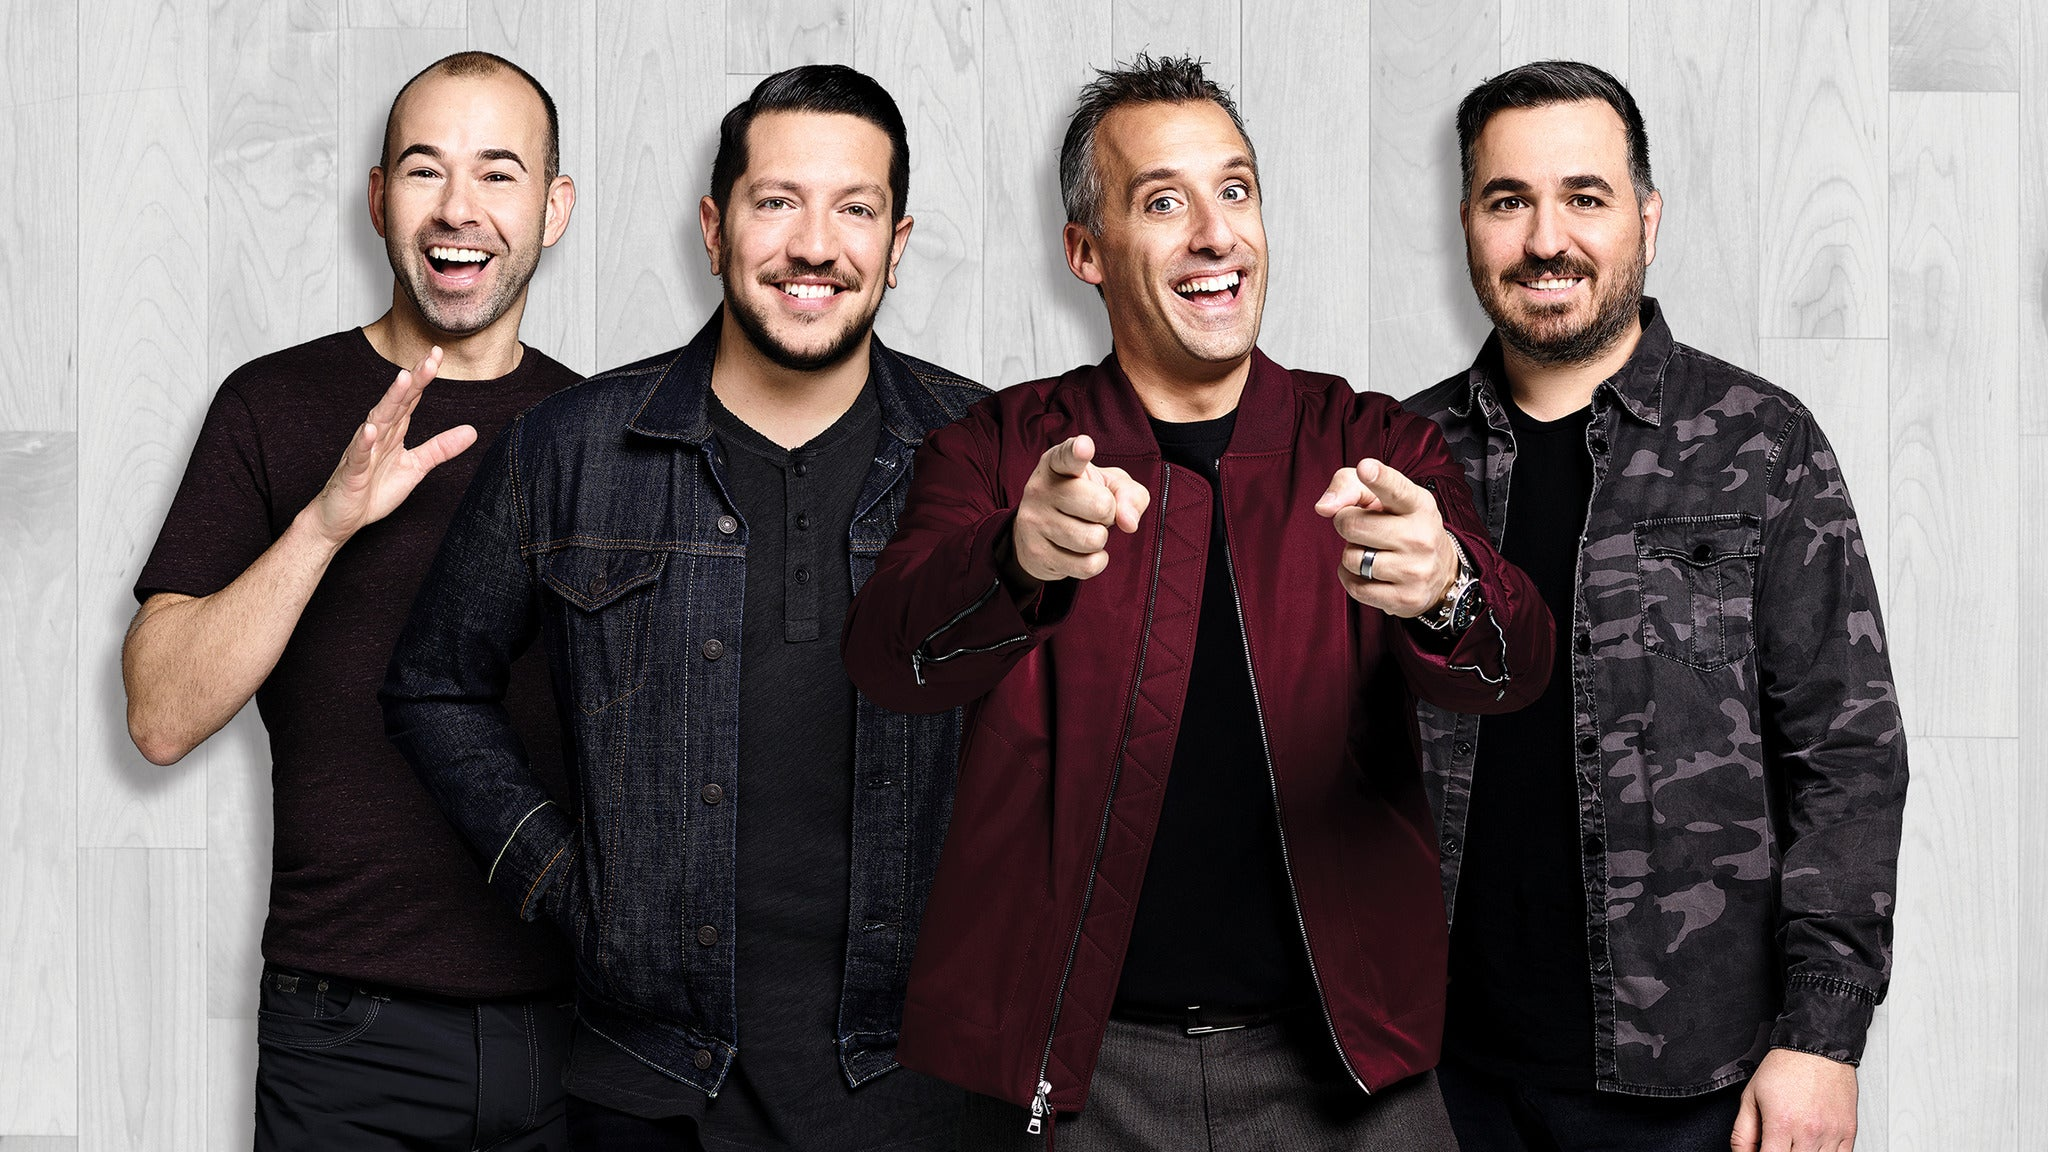 Cast of Impractical Jokers at Von Braun Center Arena